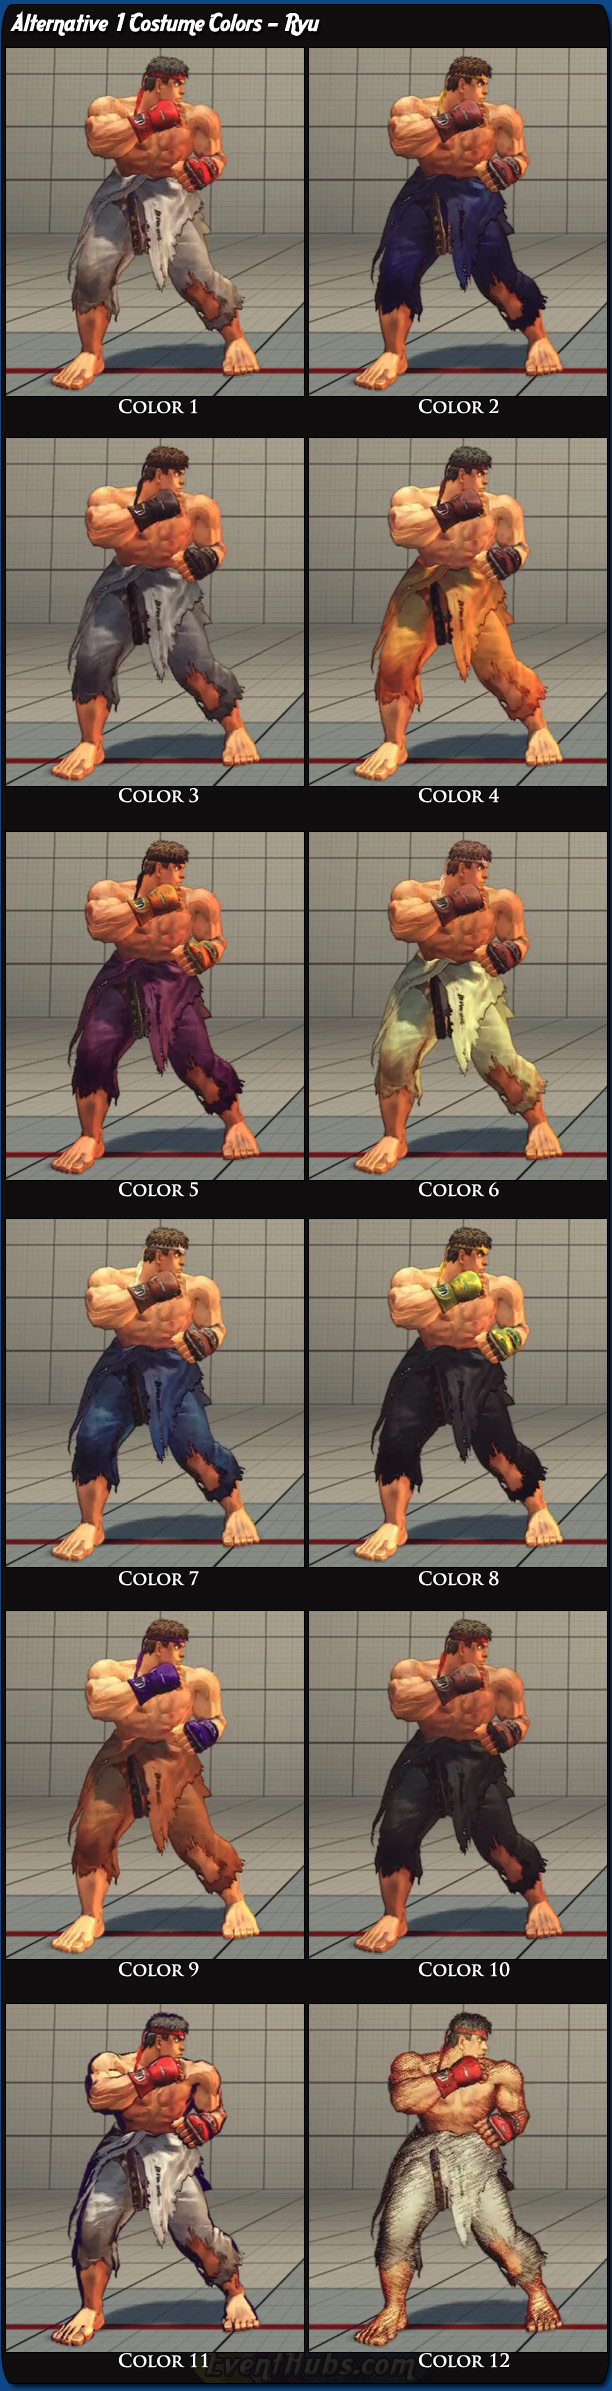 Ryu's alternative costume colors for Super Street Fighter 4